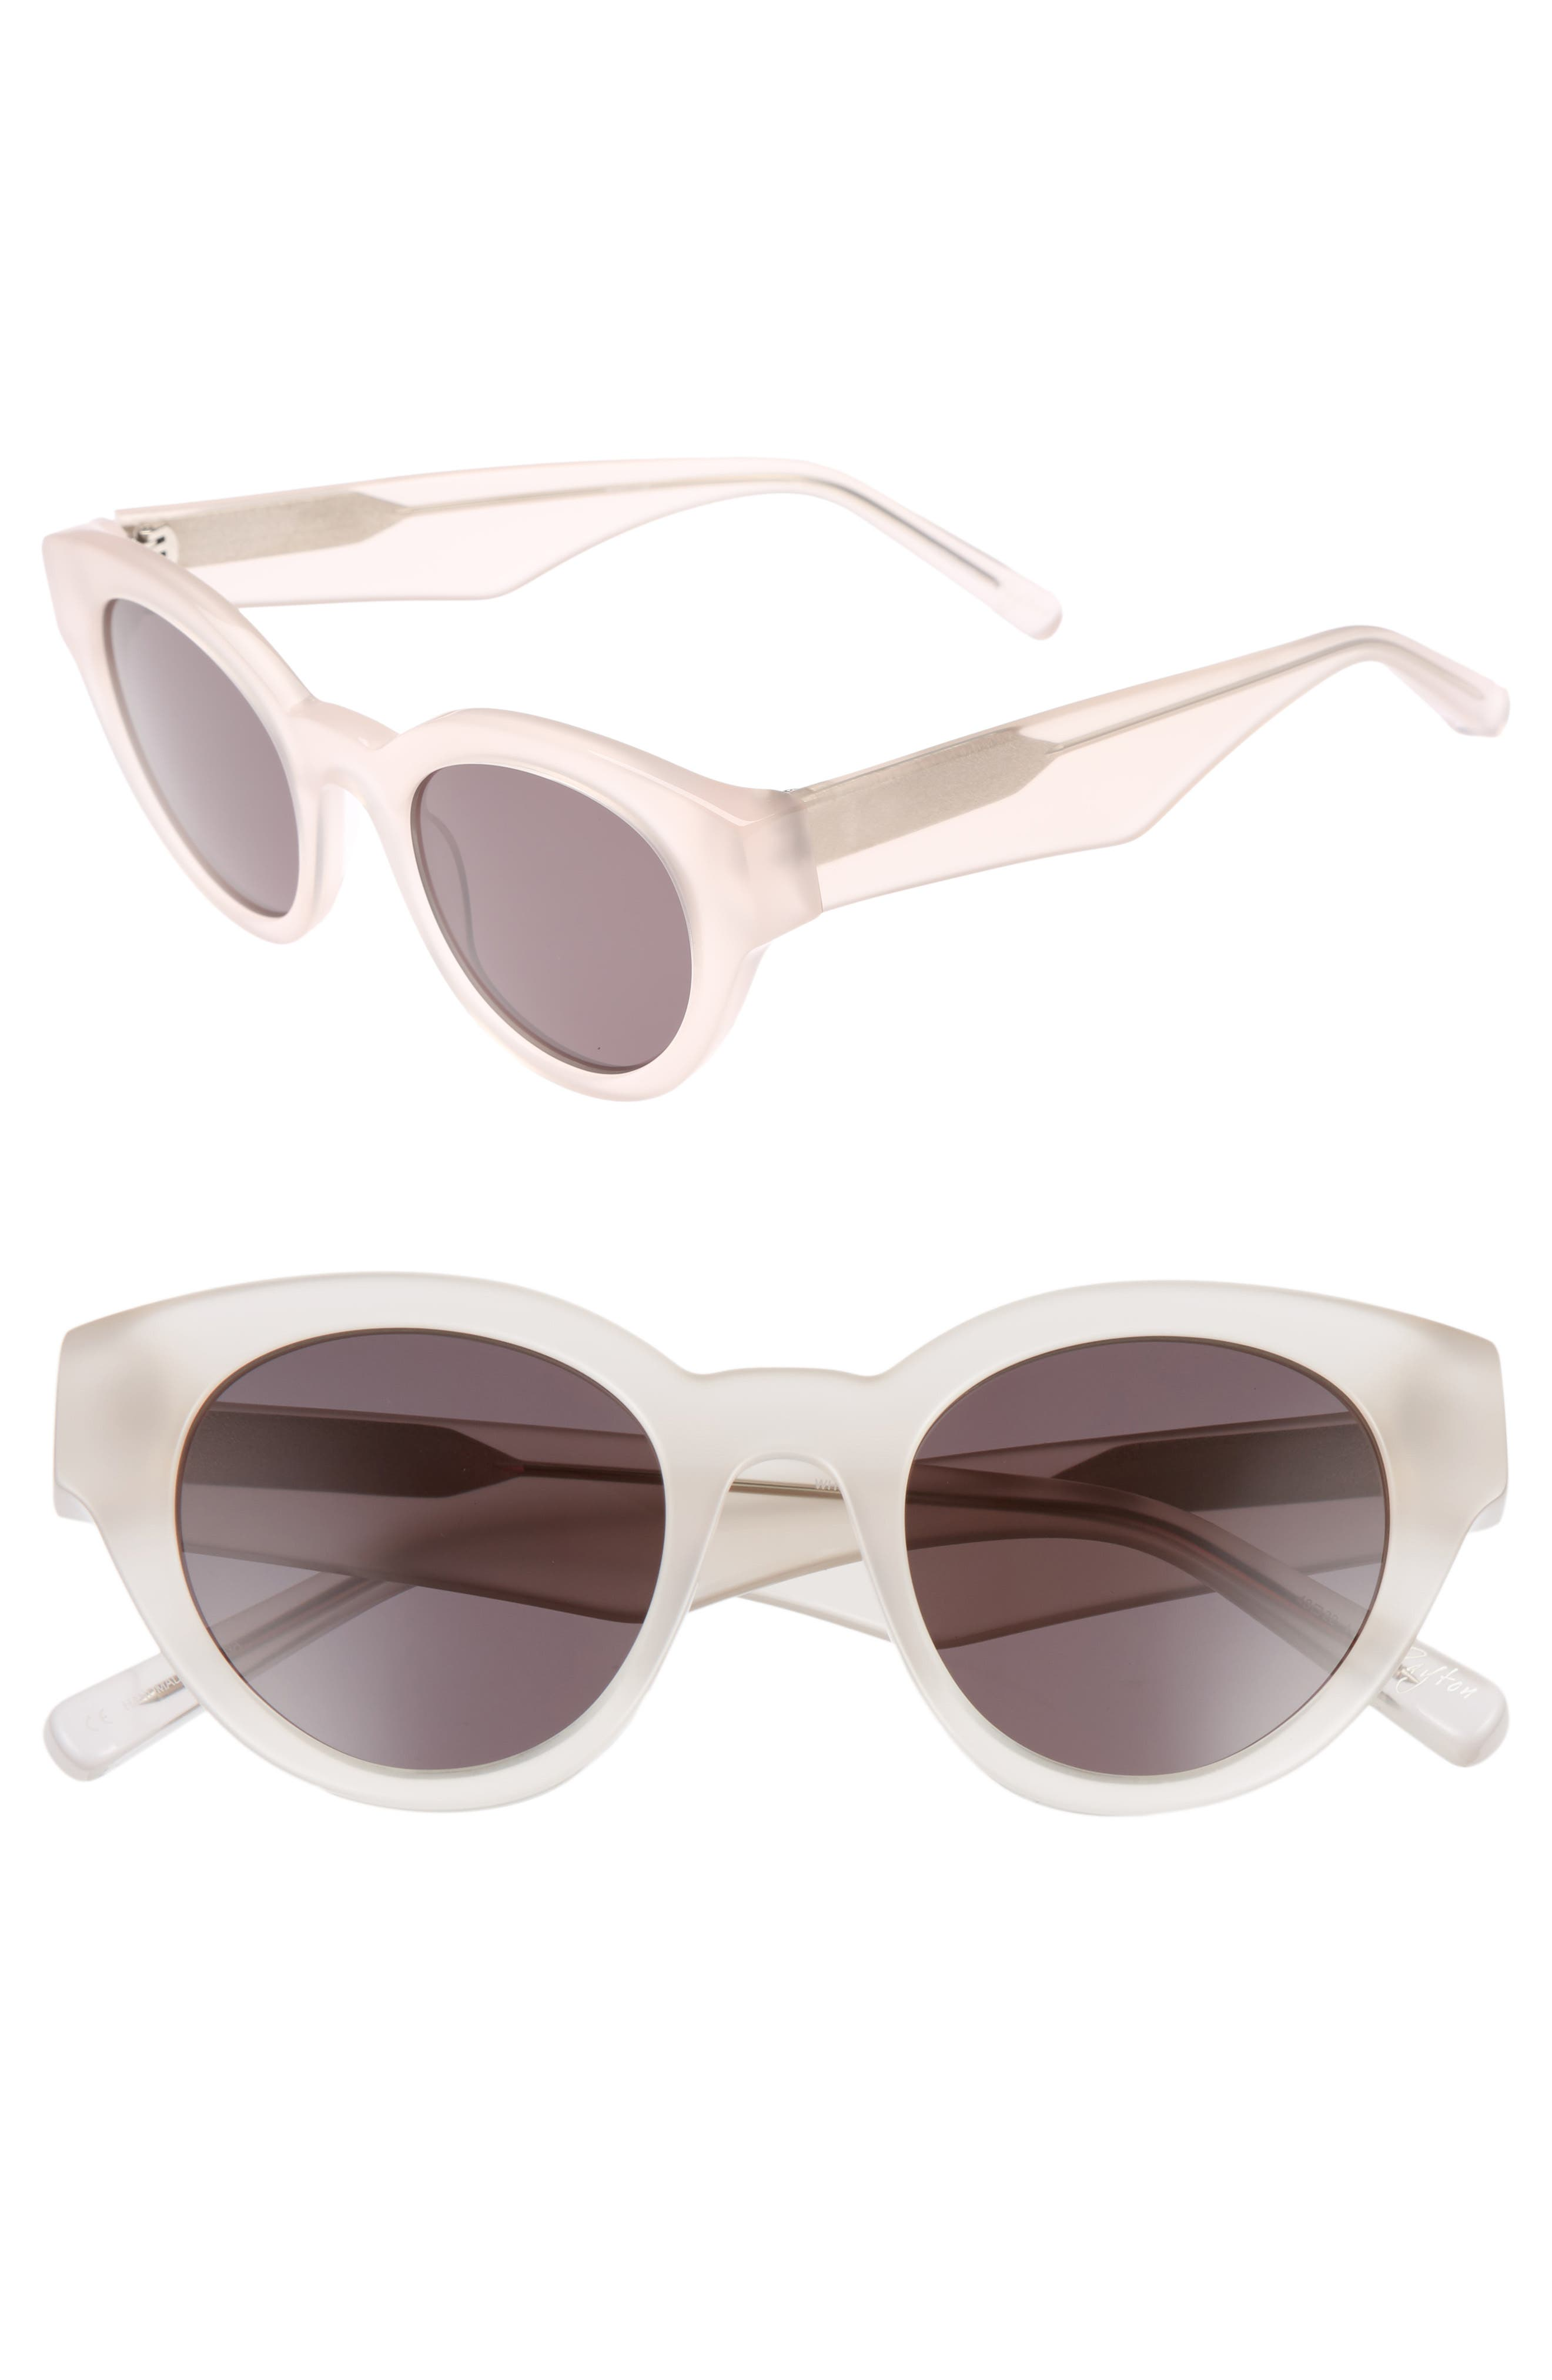 Main Image - Elizabeth and James Payton 48mm Cat Eye Sunglasses